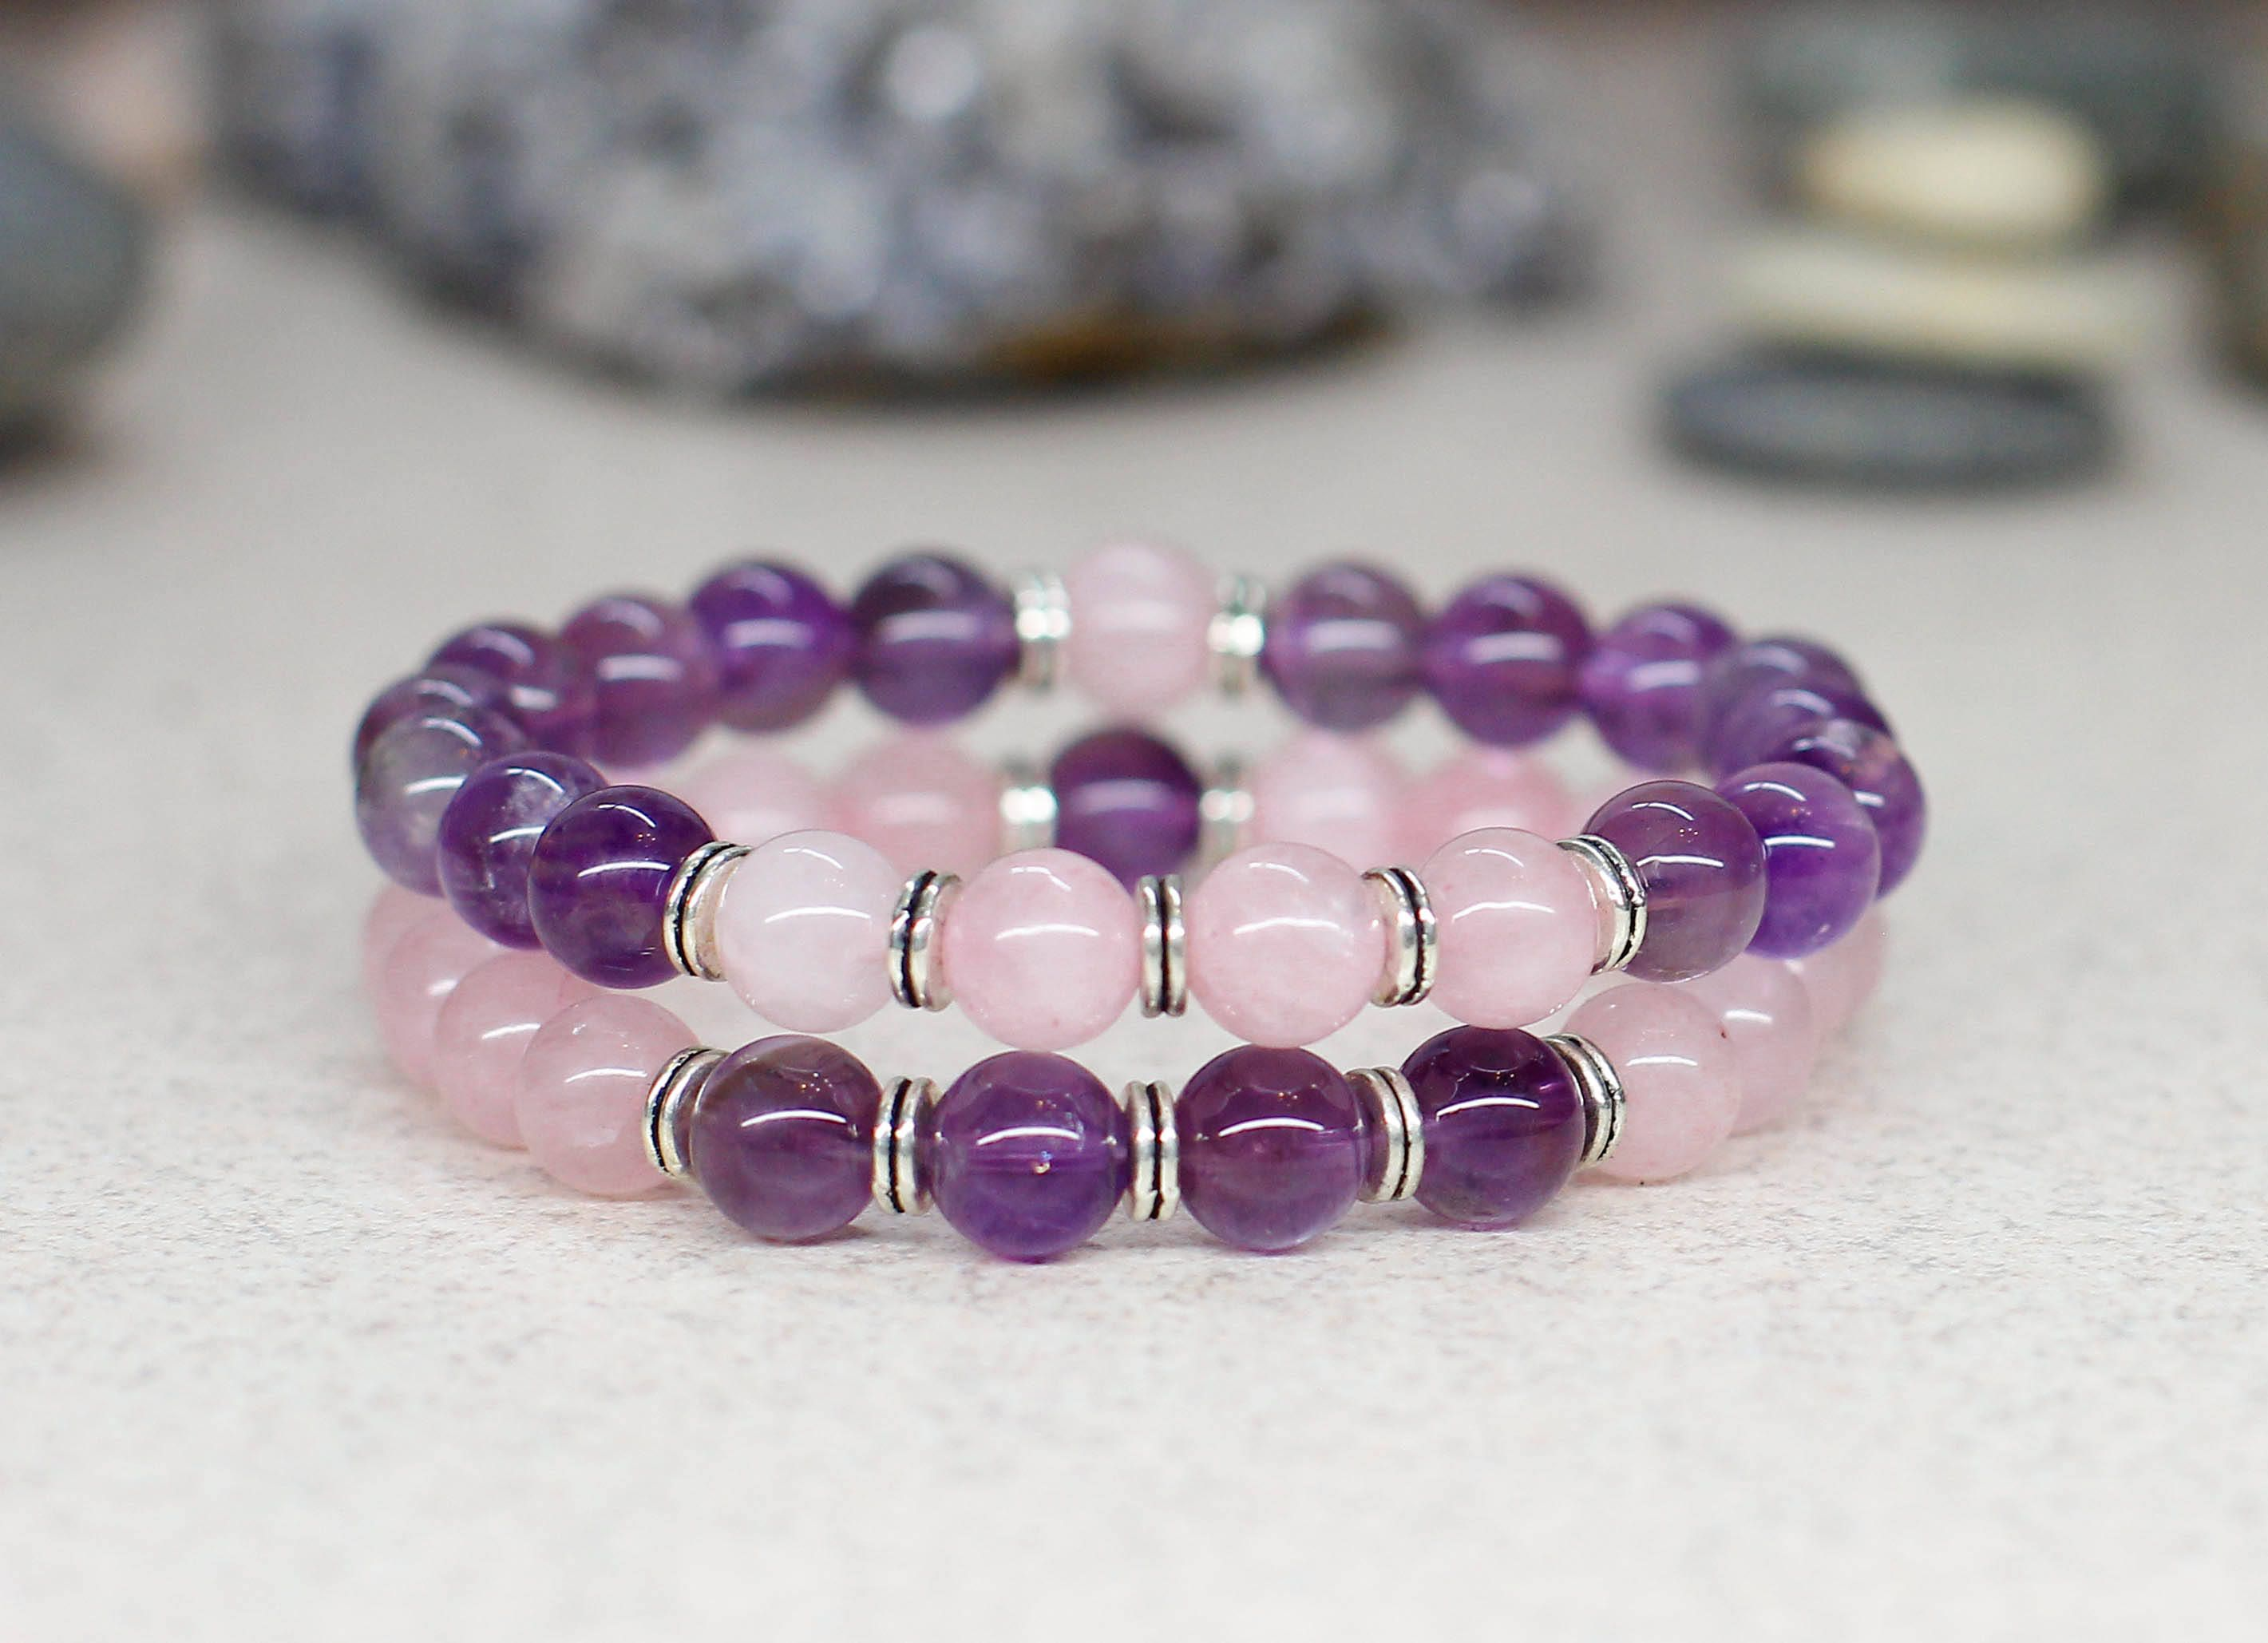 Distance Gifts For Sister Rose Quartz Crystal Bracelet Amethyst Set Stackable Bracelets Women Healing And Stone Jewelry